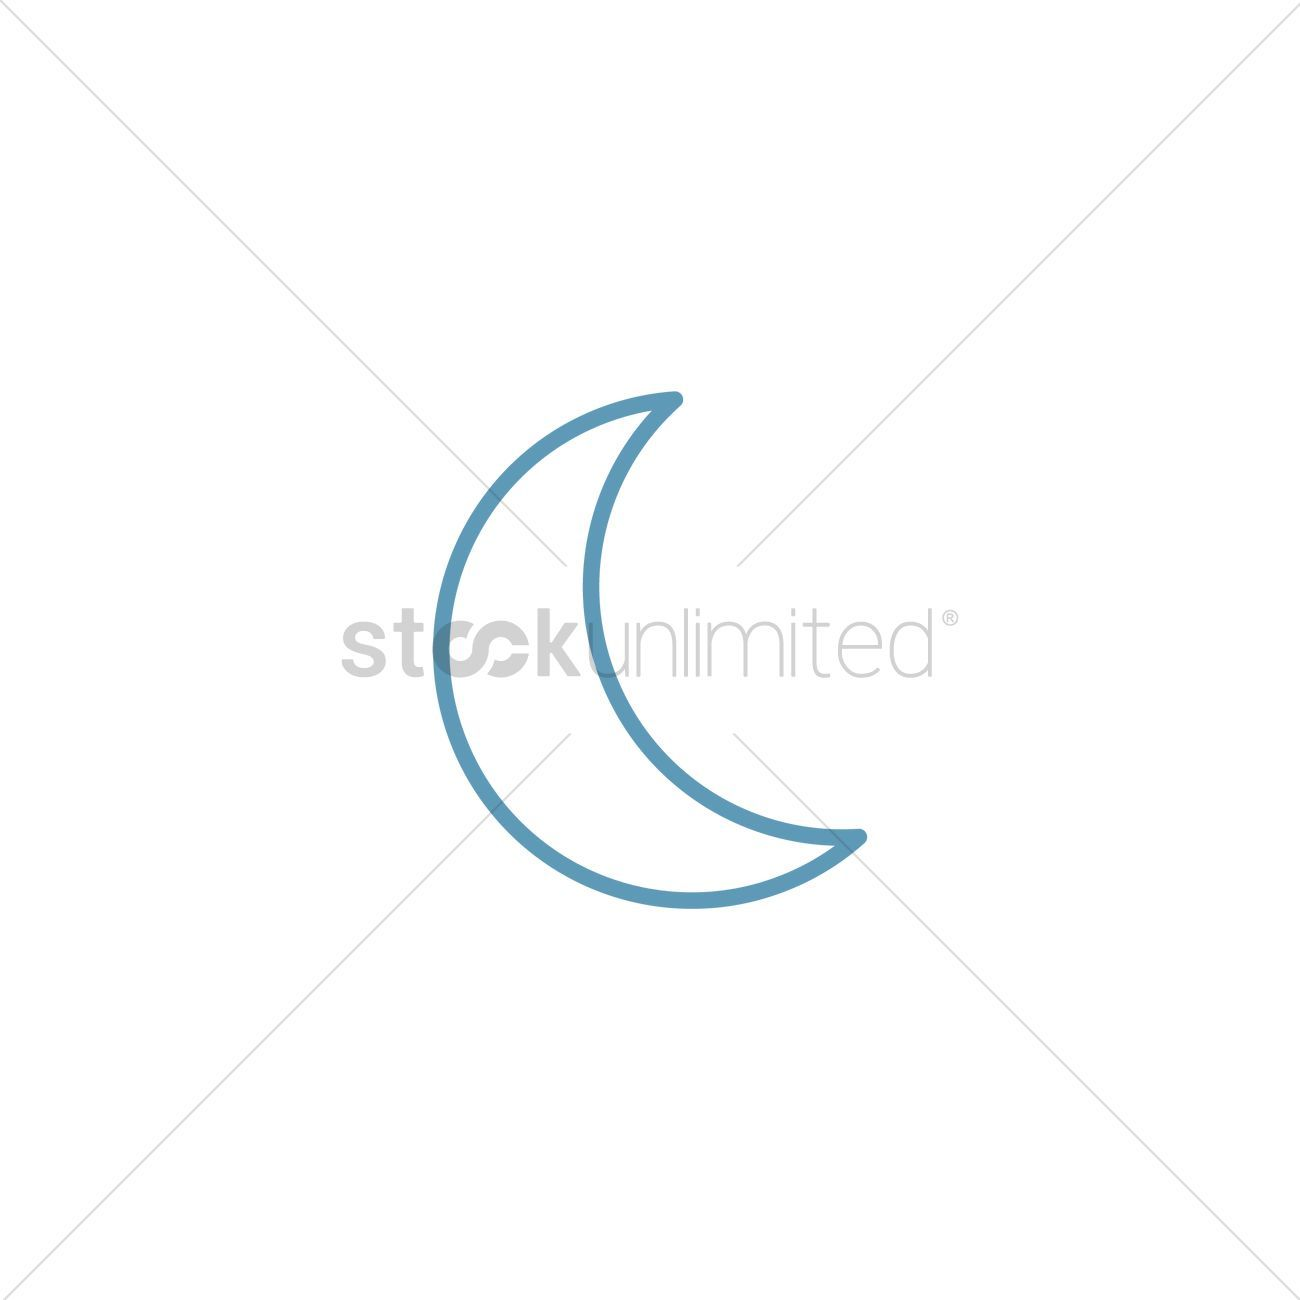 You Don't Have To Be A Designer To Get Awesome Visuals Crescent moon stock vector ,